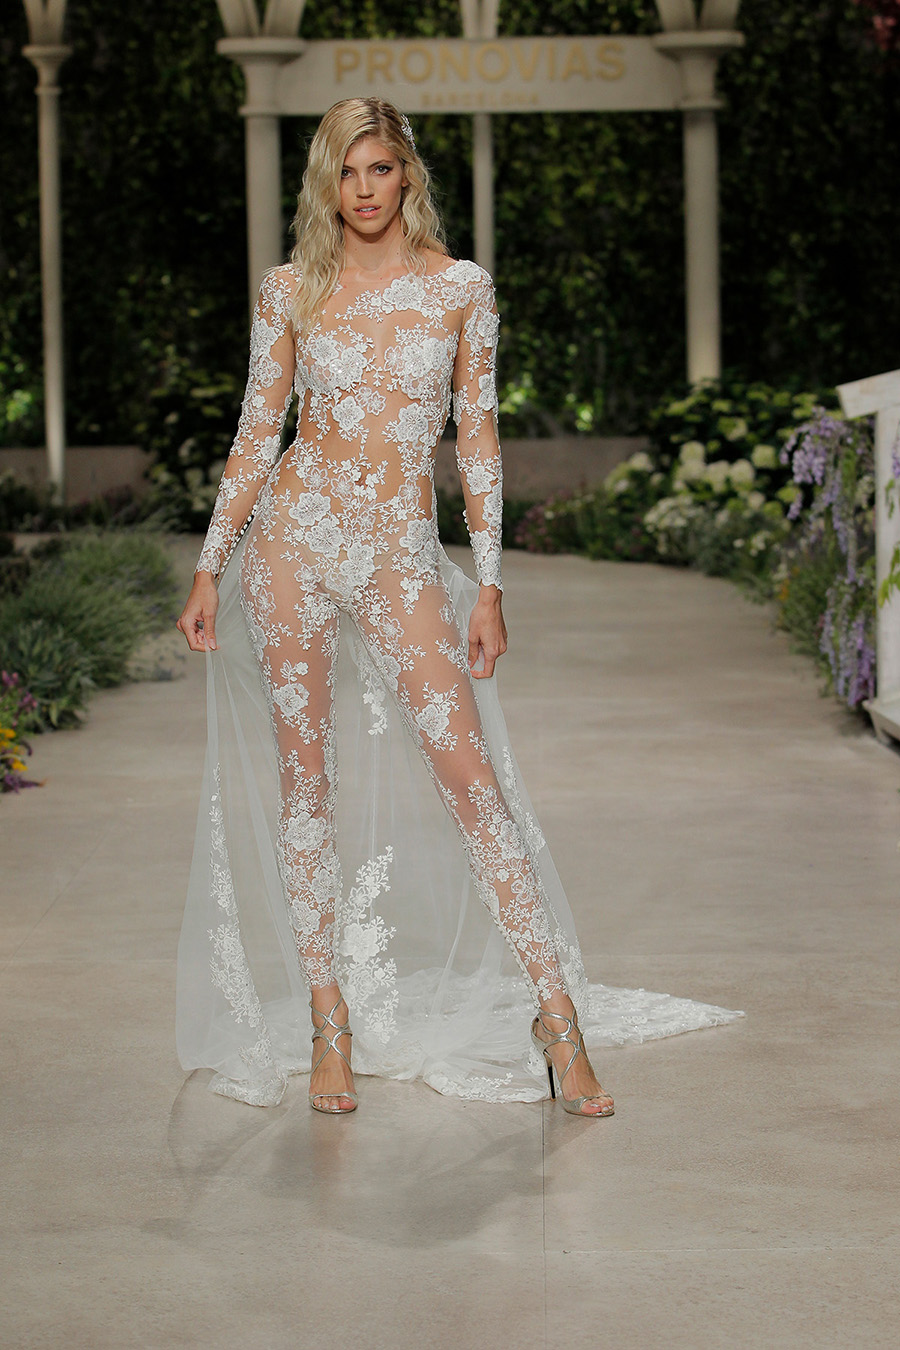 166c7660b50b Other features with Pronovias gowns. Cool for the Summer: Fashion Editorial  Shoot with Pronovias Wedding Dresses · Barcelona Bridal Fashion Week 2017:  ...